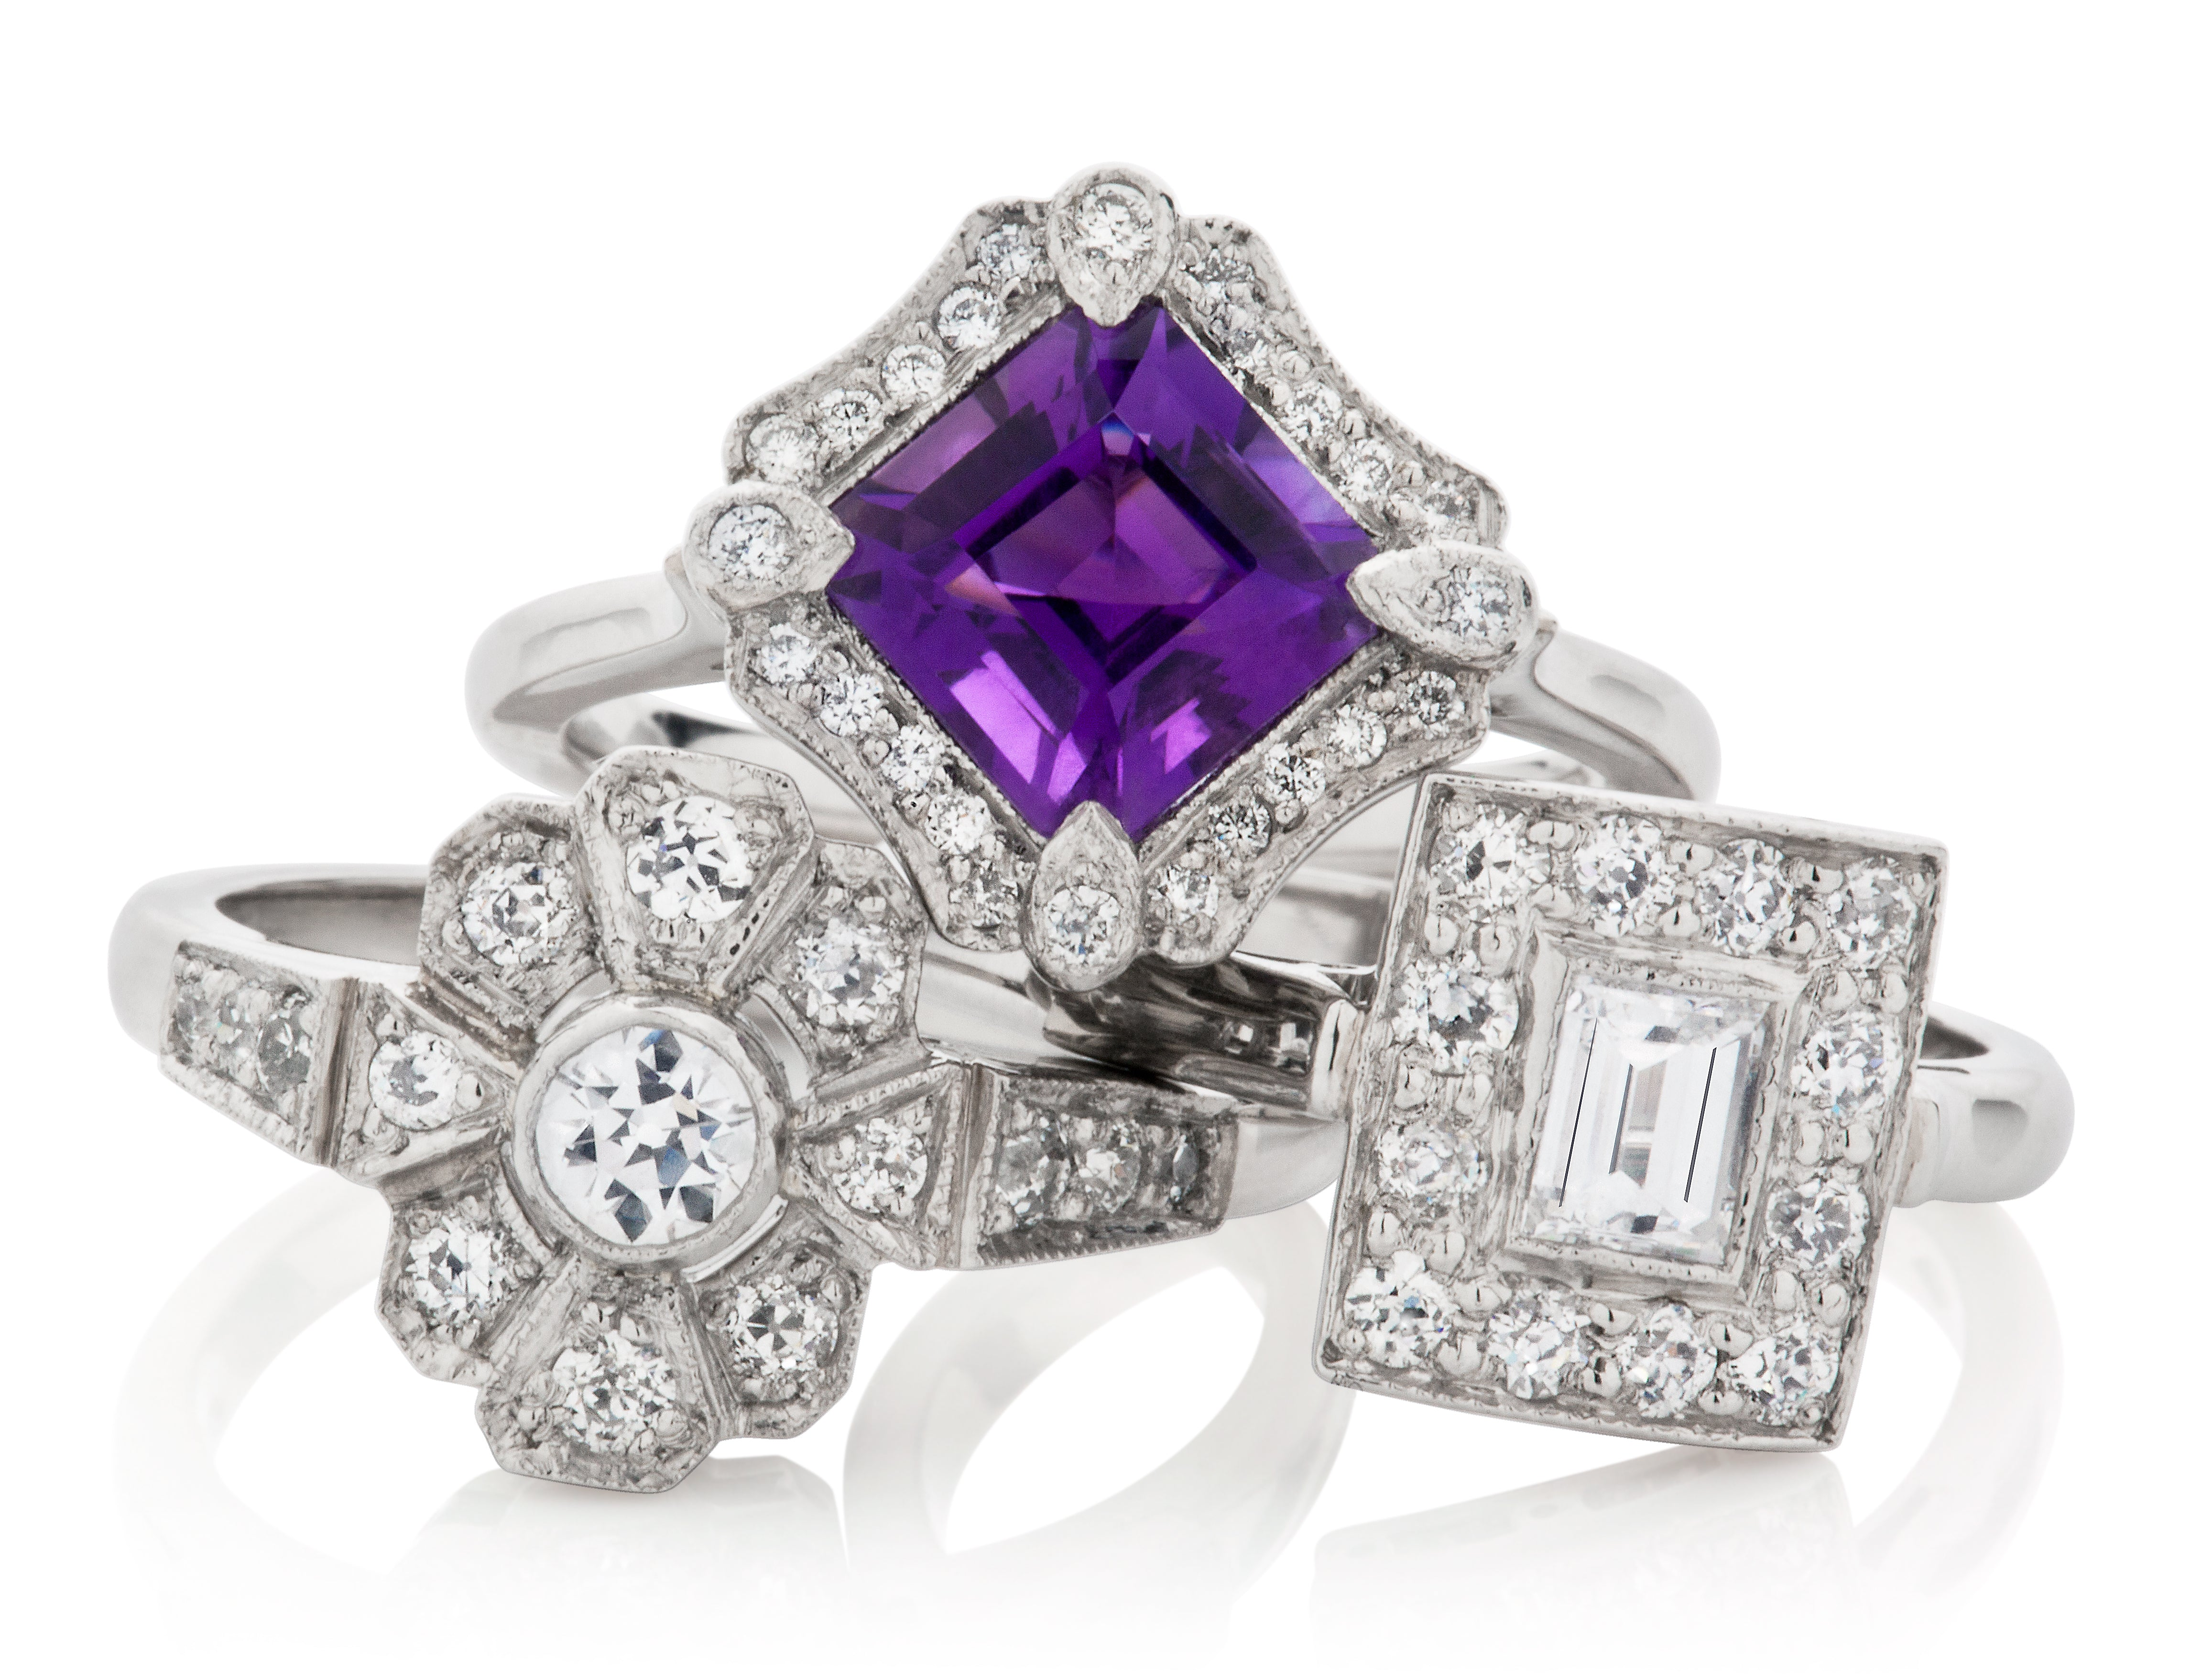 Art Deco Engagement Rings in the Cluster Style - London Victorian Ring UK